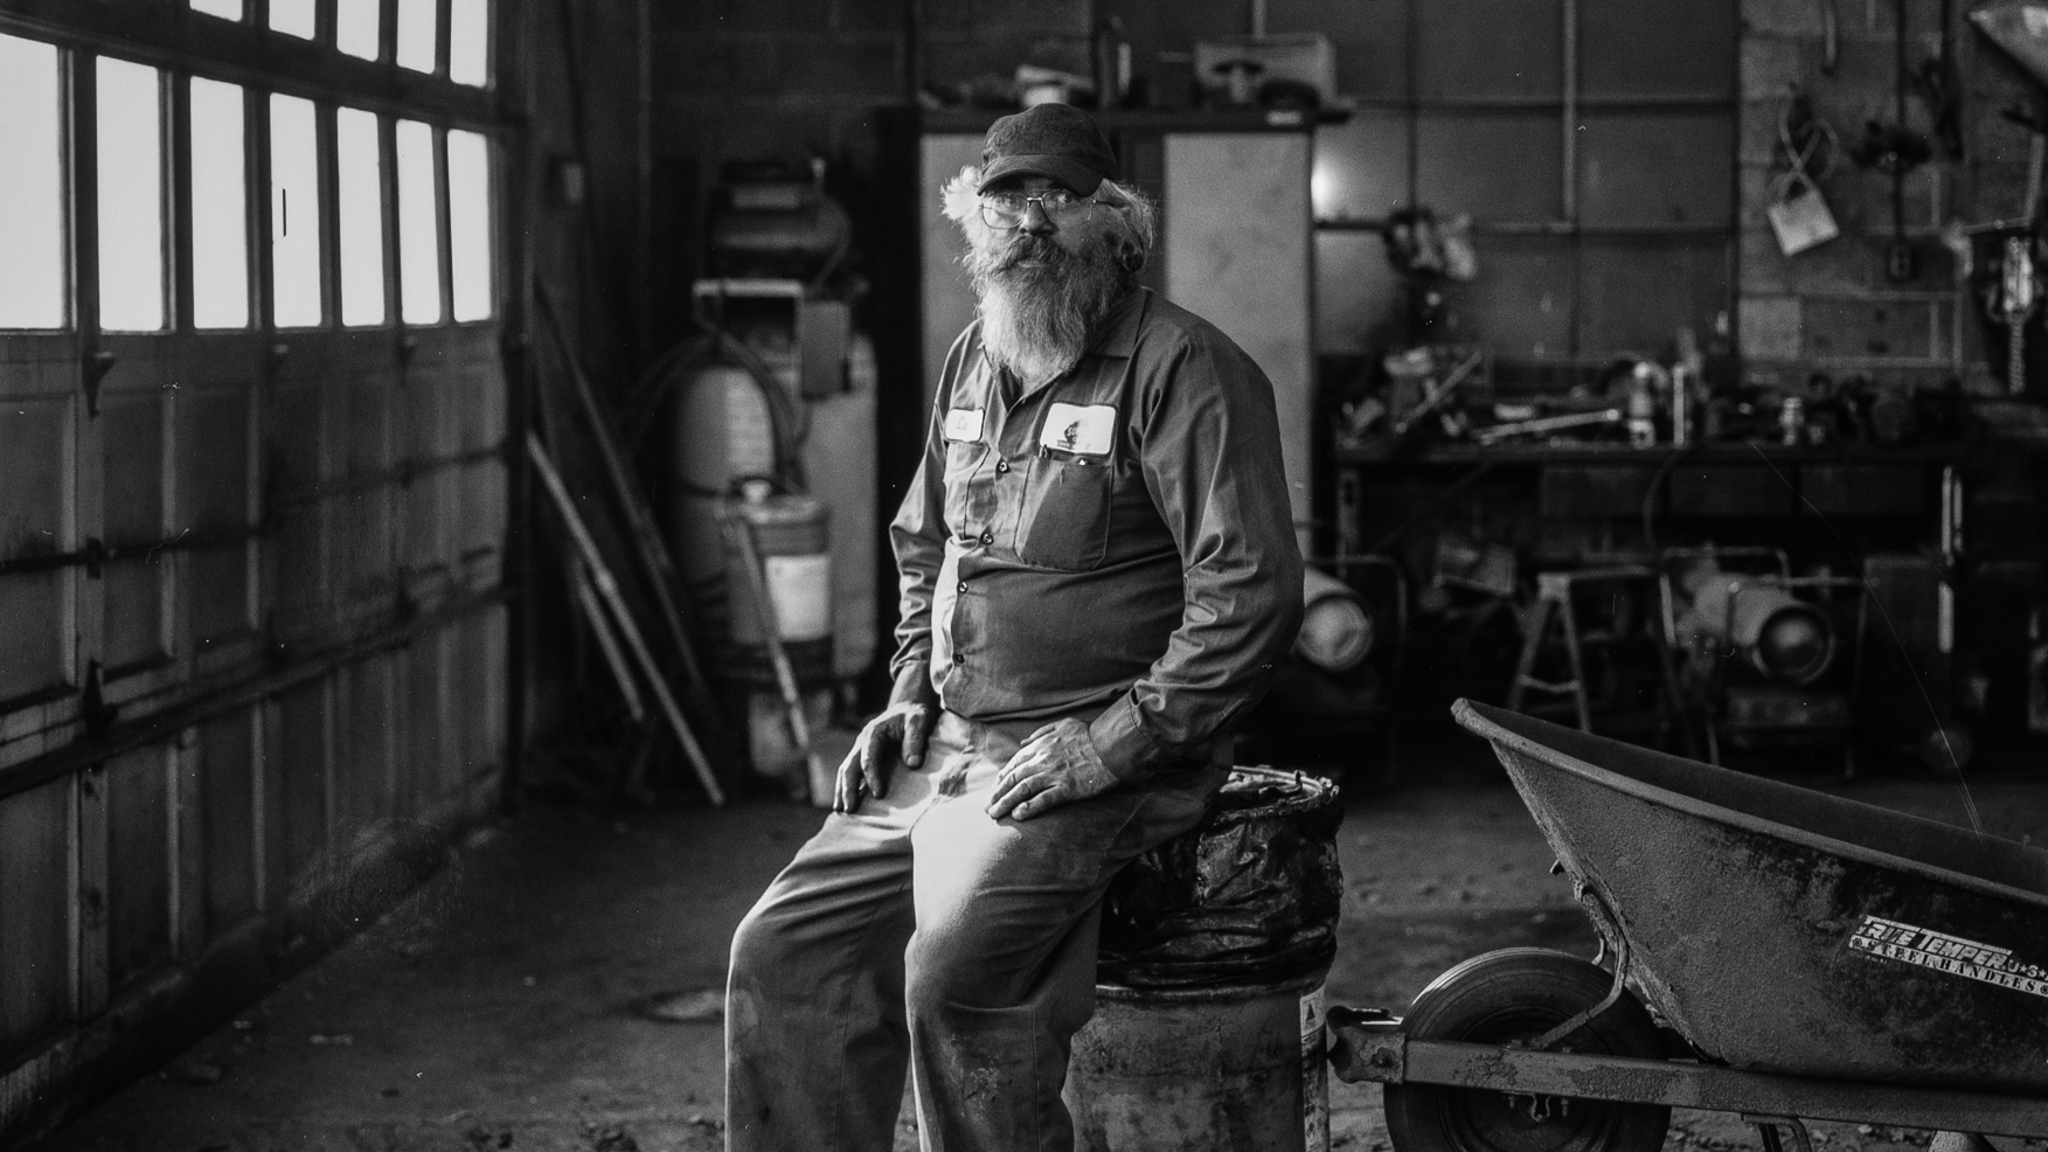 Can an actual ache in their bones explain why so many Rust Belt voters  flocked to the New York billionaire  A coalminer s grandson digs deep to  find out. 9ce53cdd4